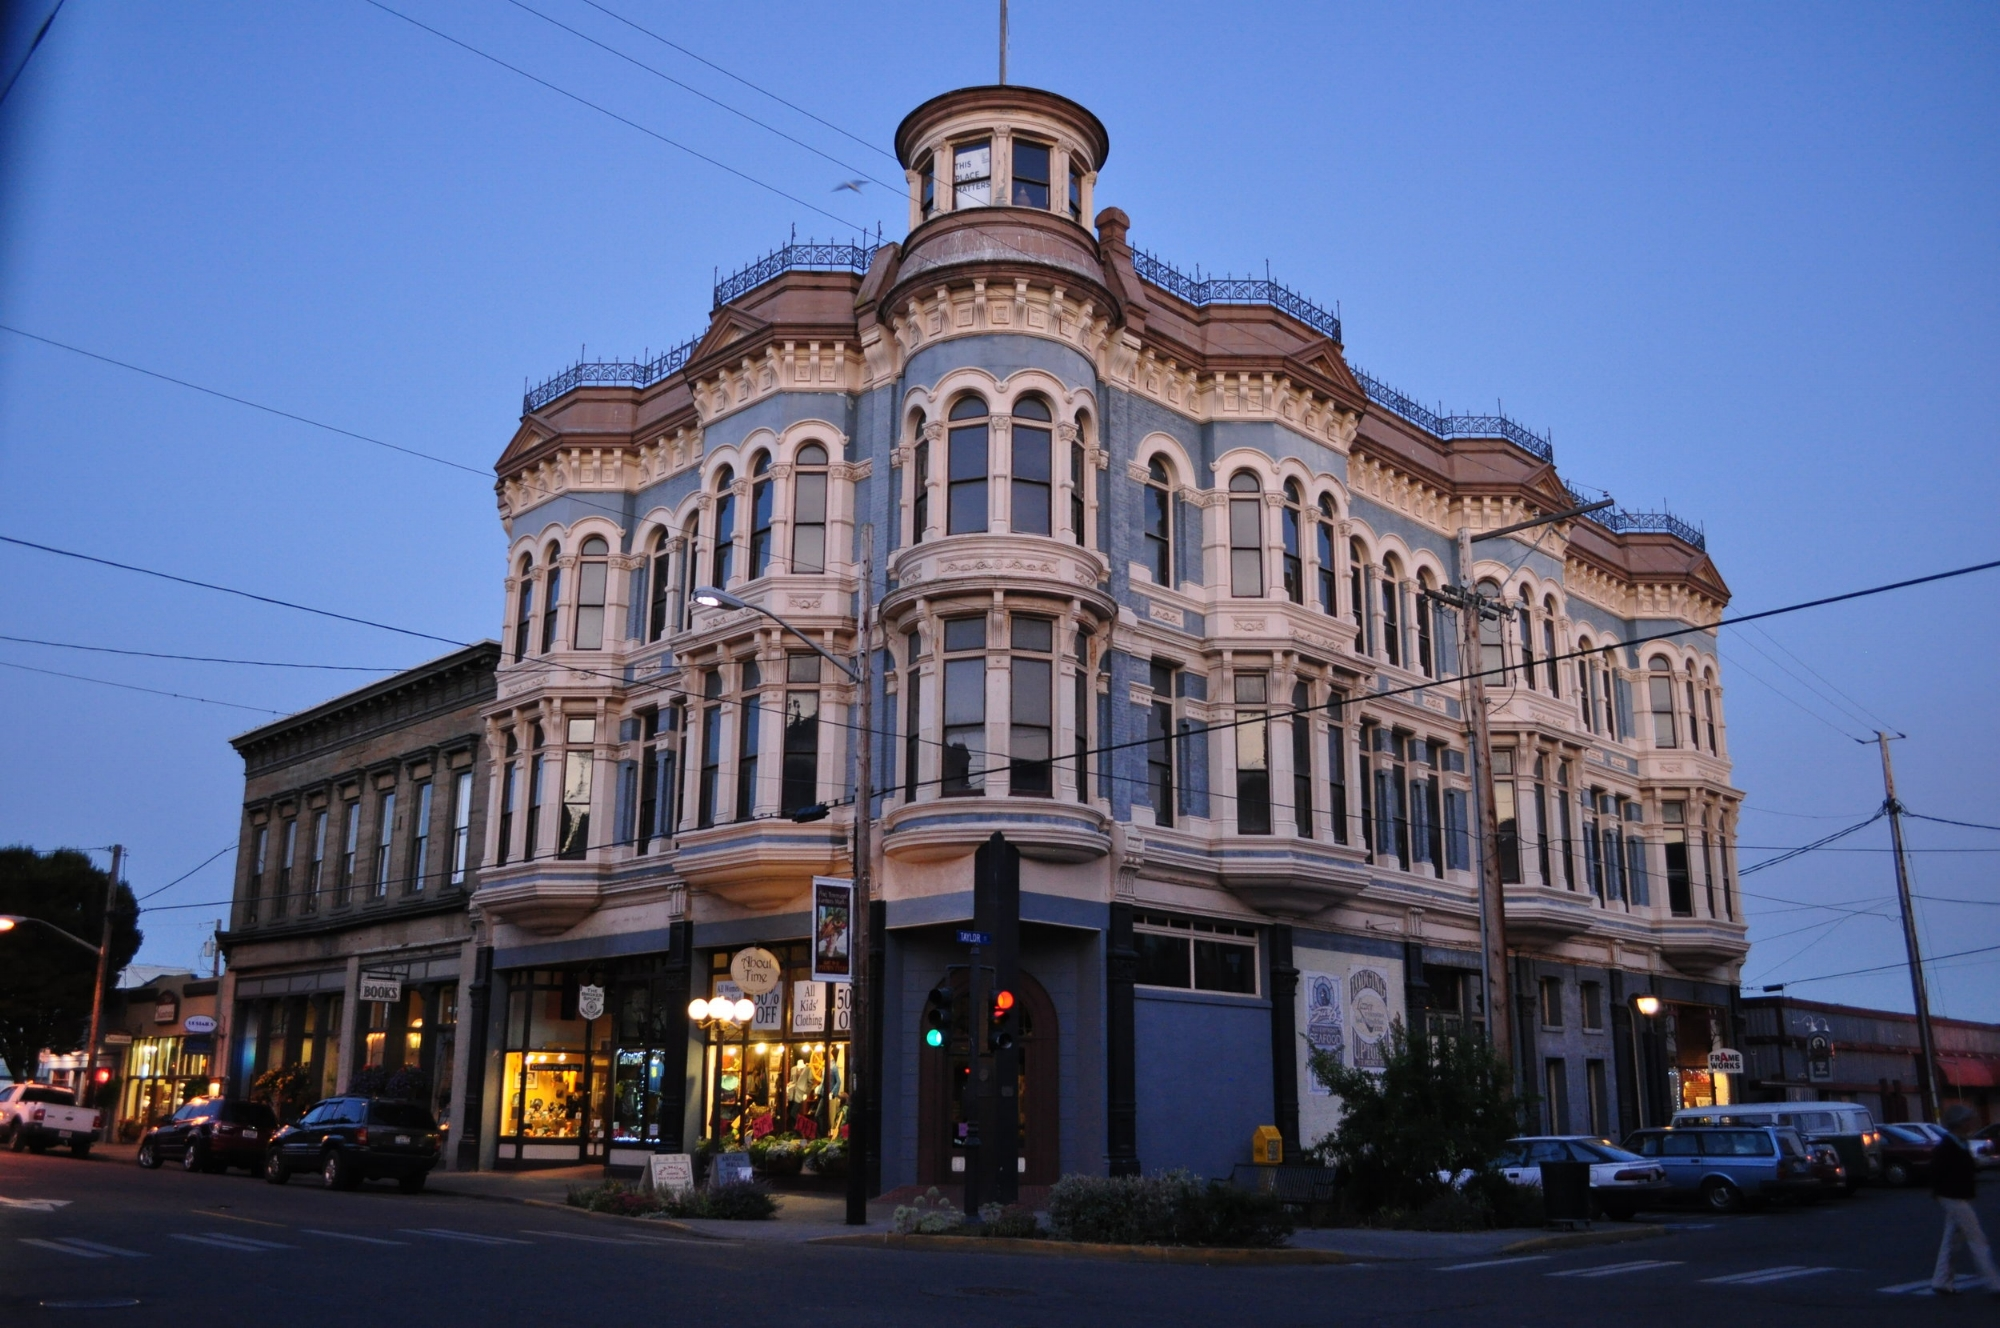 Exterior view of the Hastings Building, Port Townsend, 2011; from Wikimedia Commons, photo by Joe Mabel